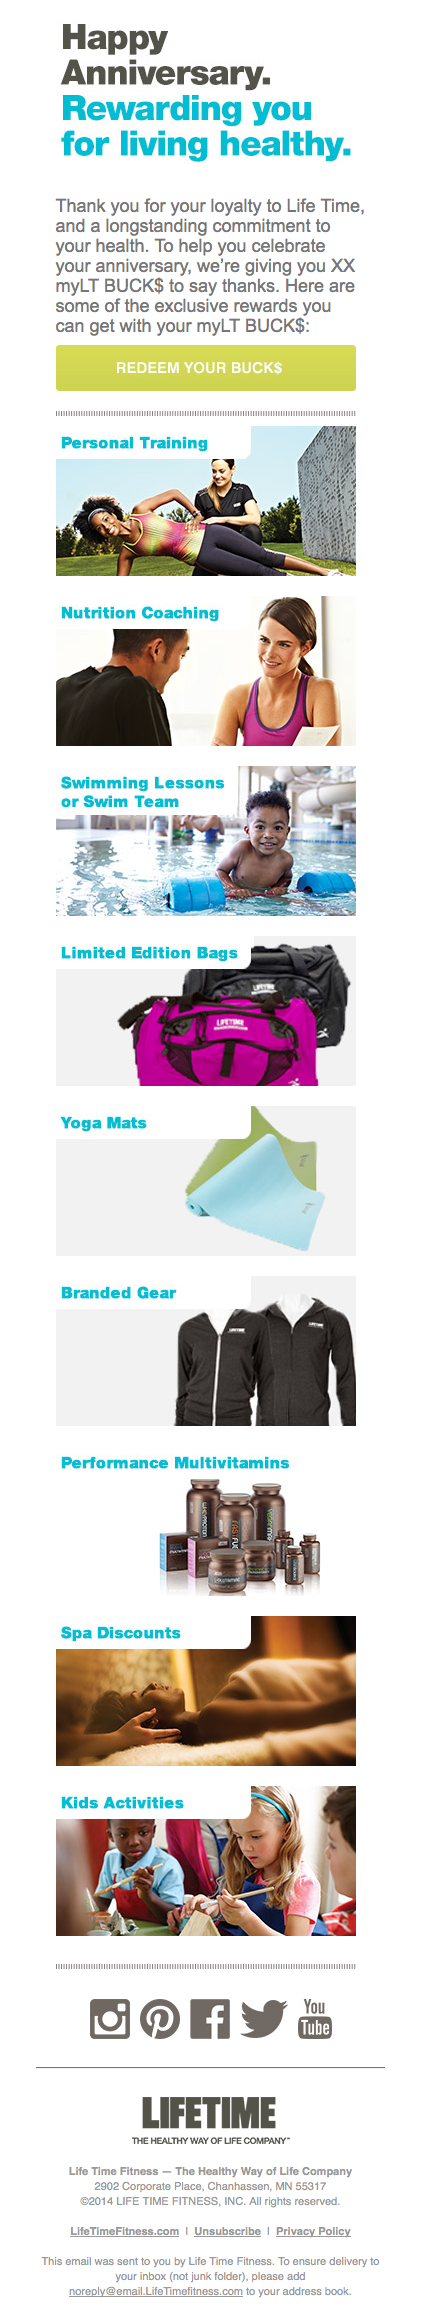 Email- Life Time Fitness-mobile.png